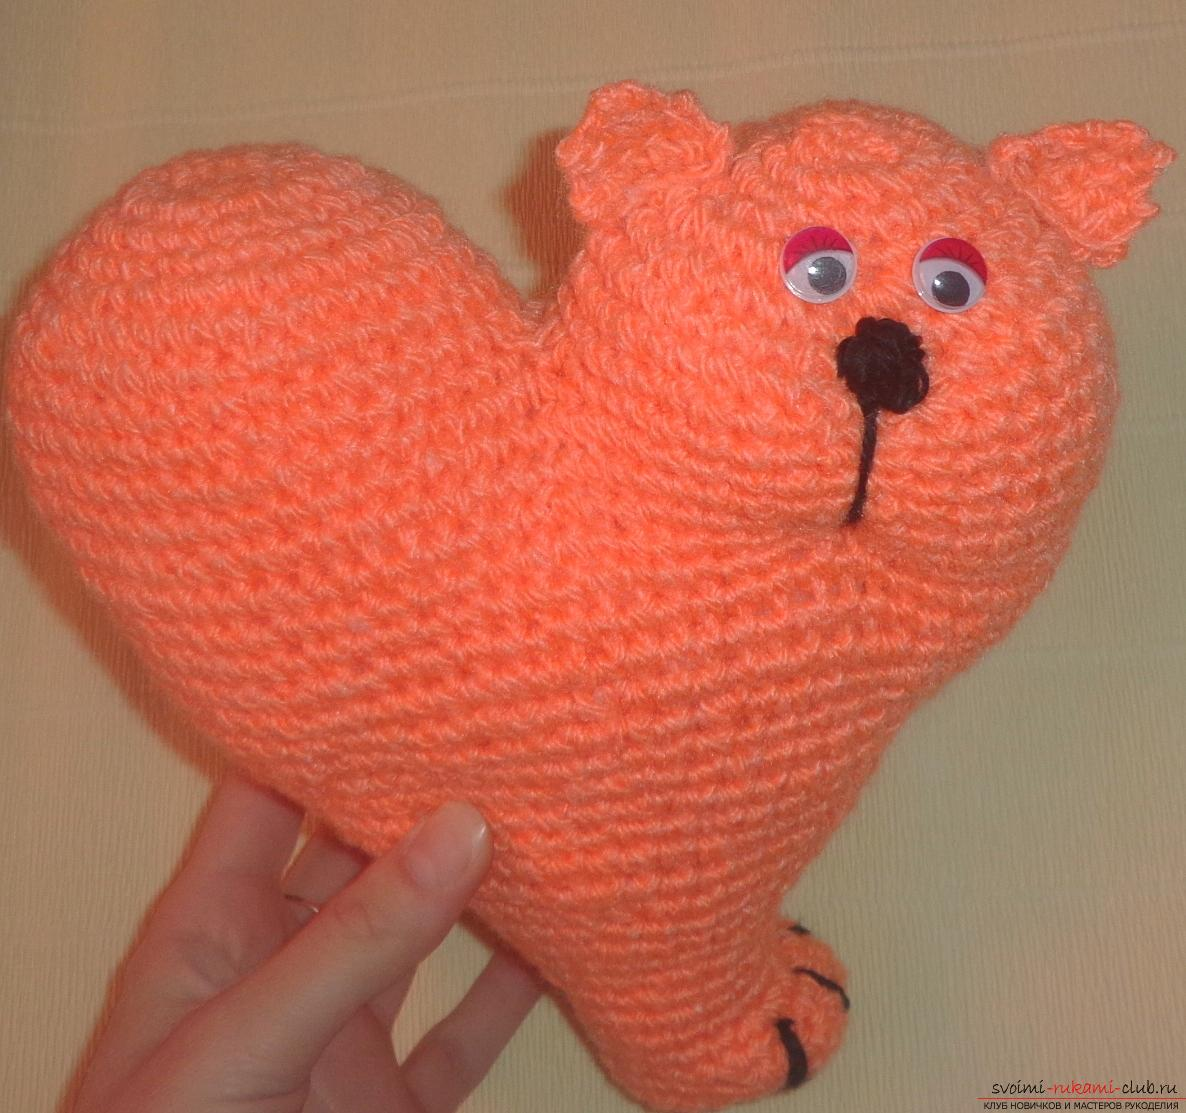 This master class will teach how to tie an unusual valentine - a cat crochet